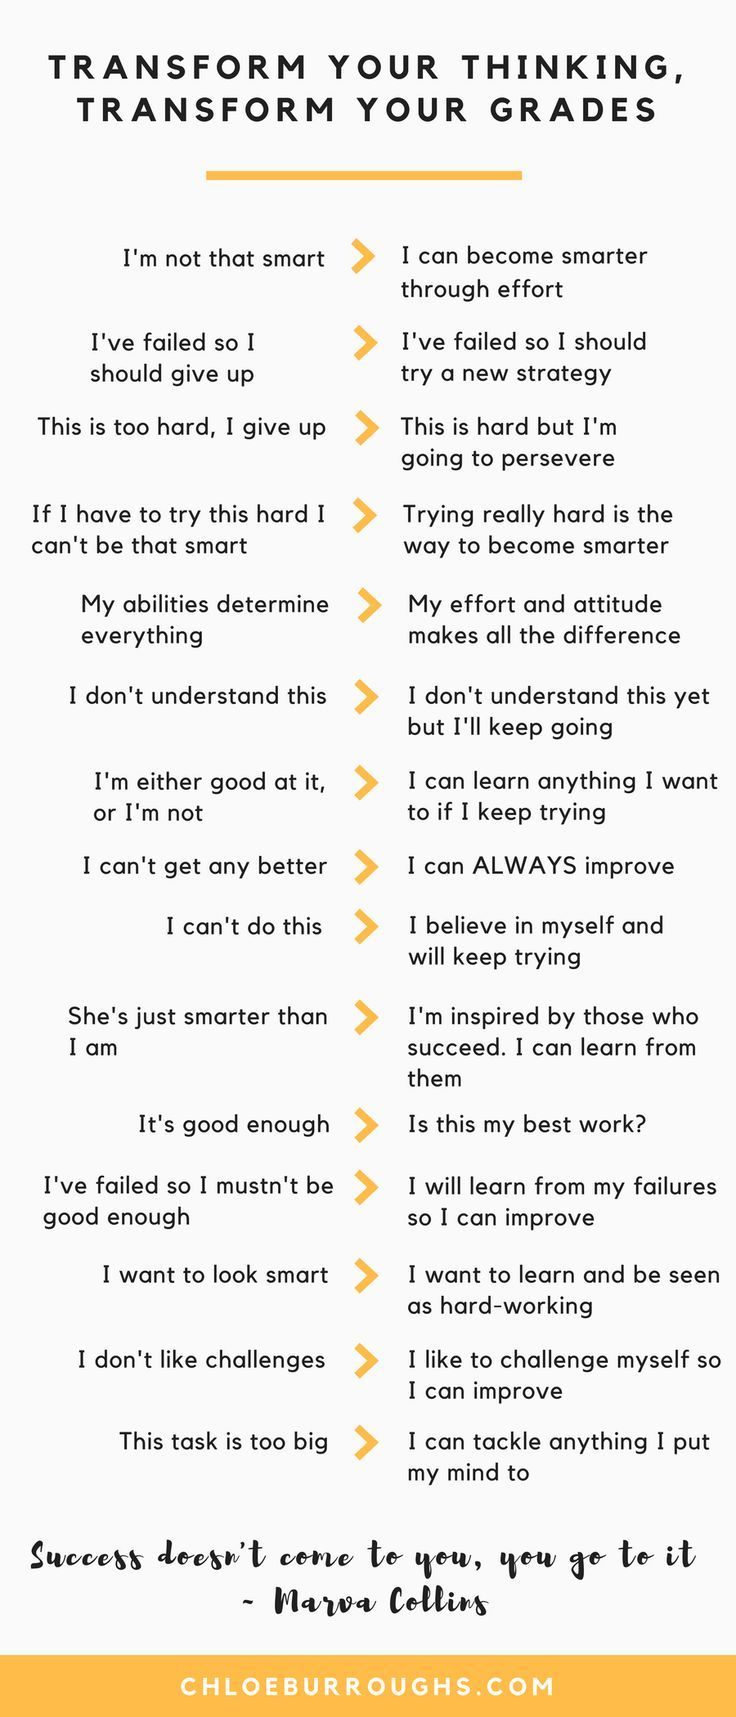 How to Develop a Growth Mindset and Achieve Higher Grades - ChloeBurroughs.com